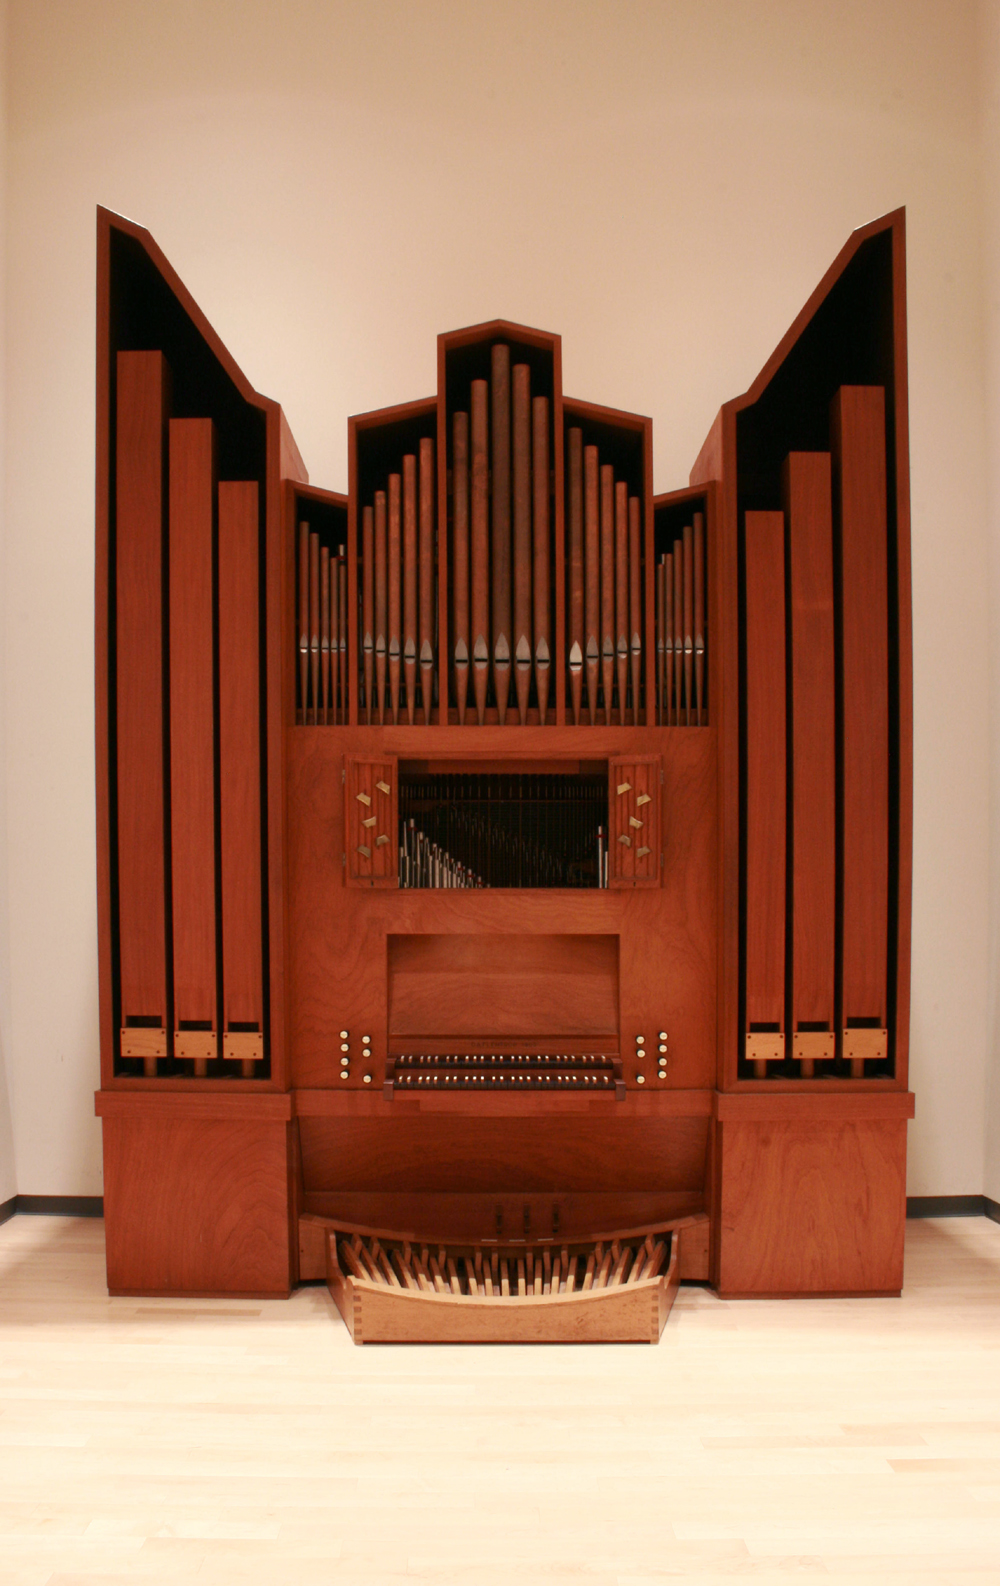 Flentrop organ (1969) in Organ Studio at The Juilliard School - New York City  (2010 photo: Steven E. Lawson)